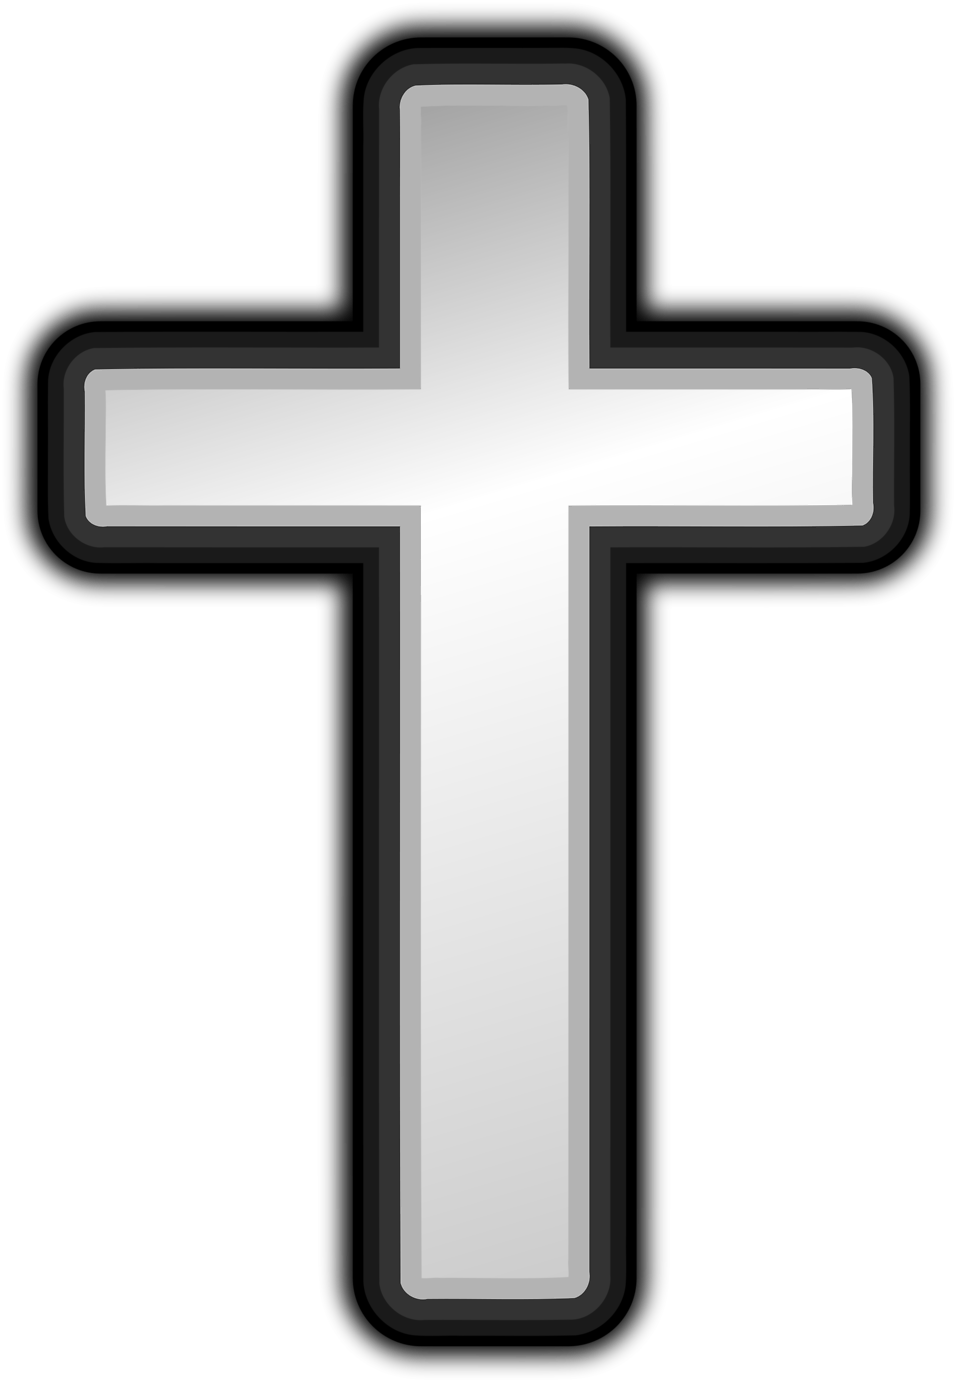 Cross jesus clipart banner free Cross | Free Stock Photo | Illustration of a white cross | # 16542 banner free